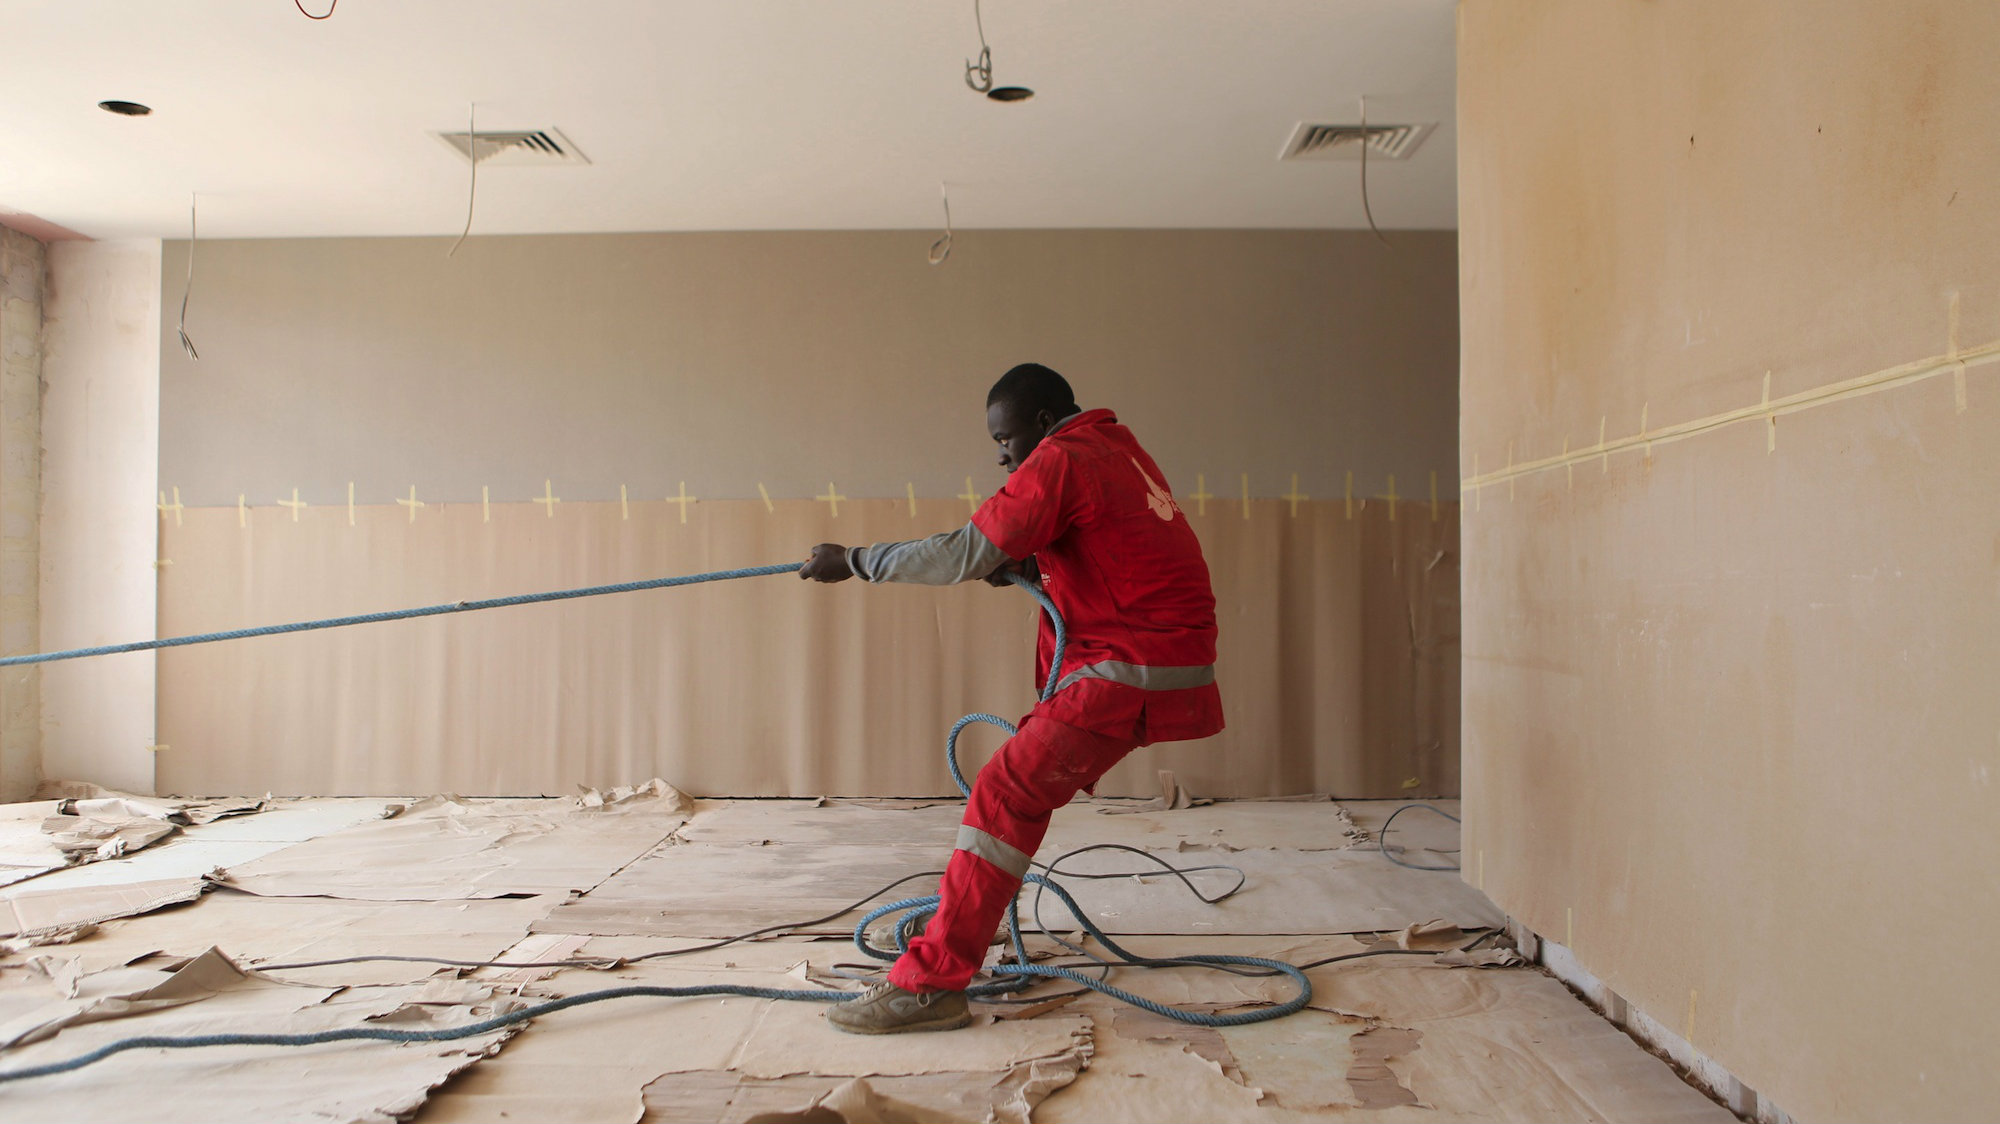 A worker at the construction site for the Radisson hotel being built in Abidjan, Ivory Coast.